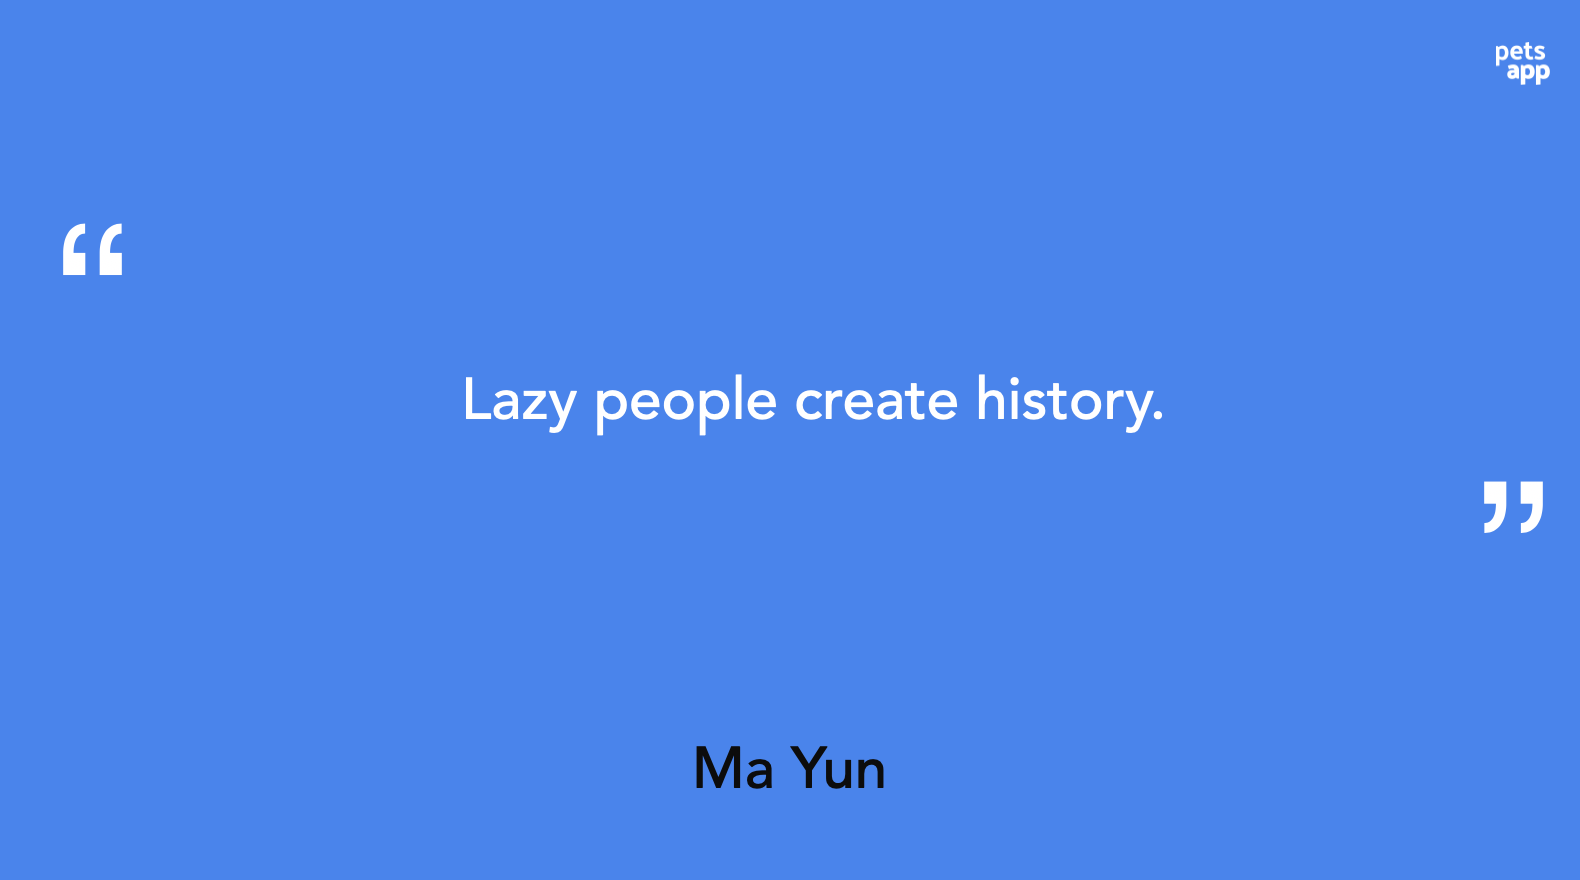 Lazy people create history